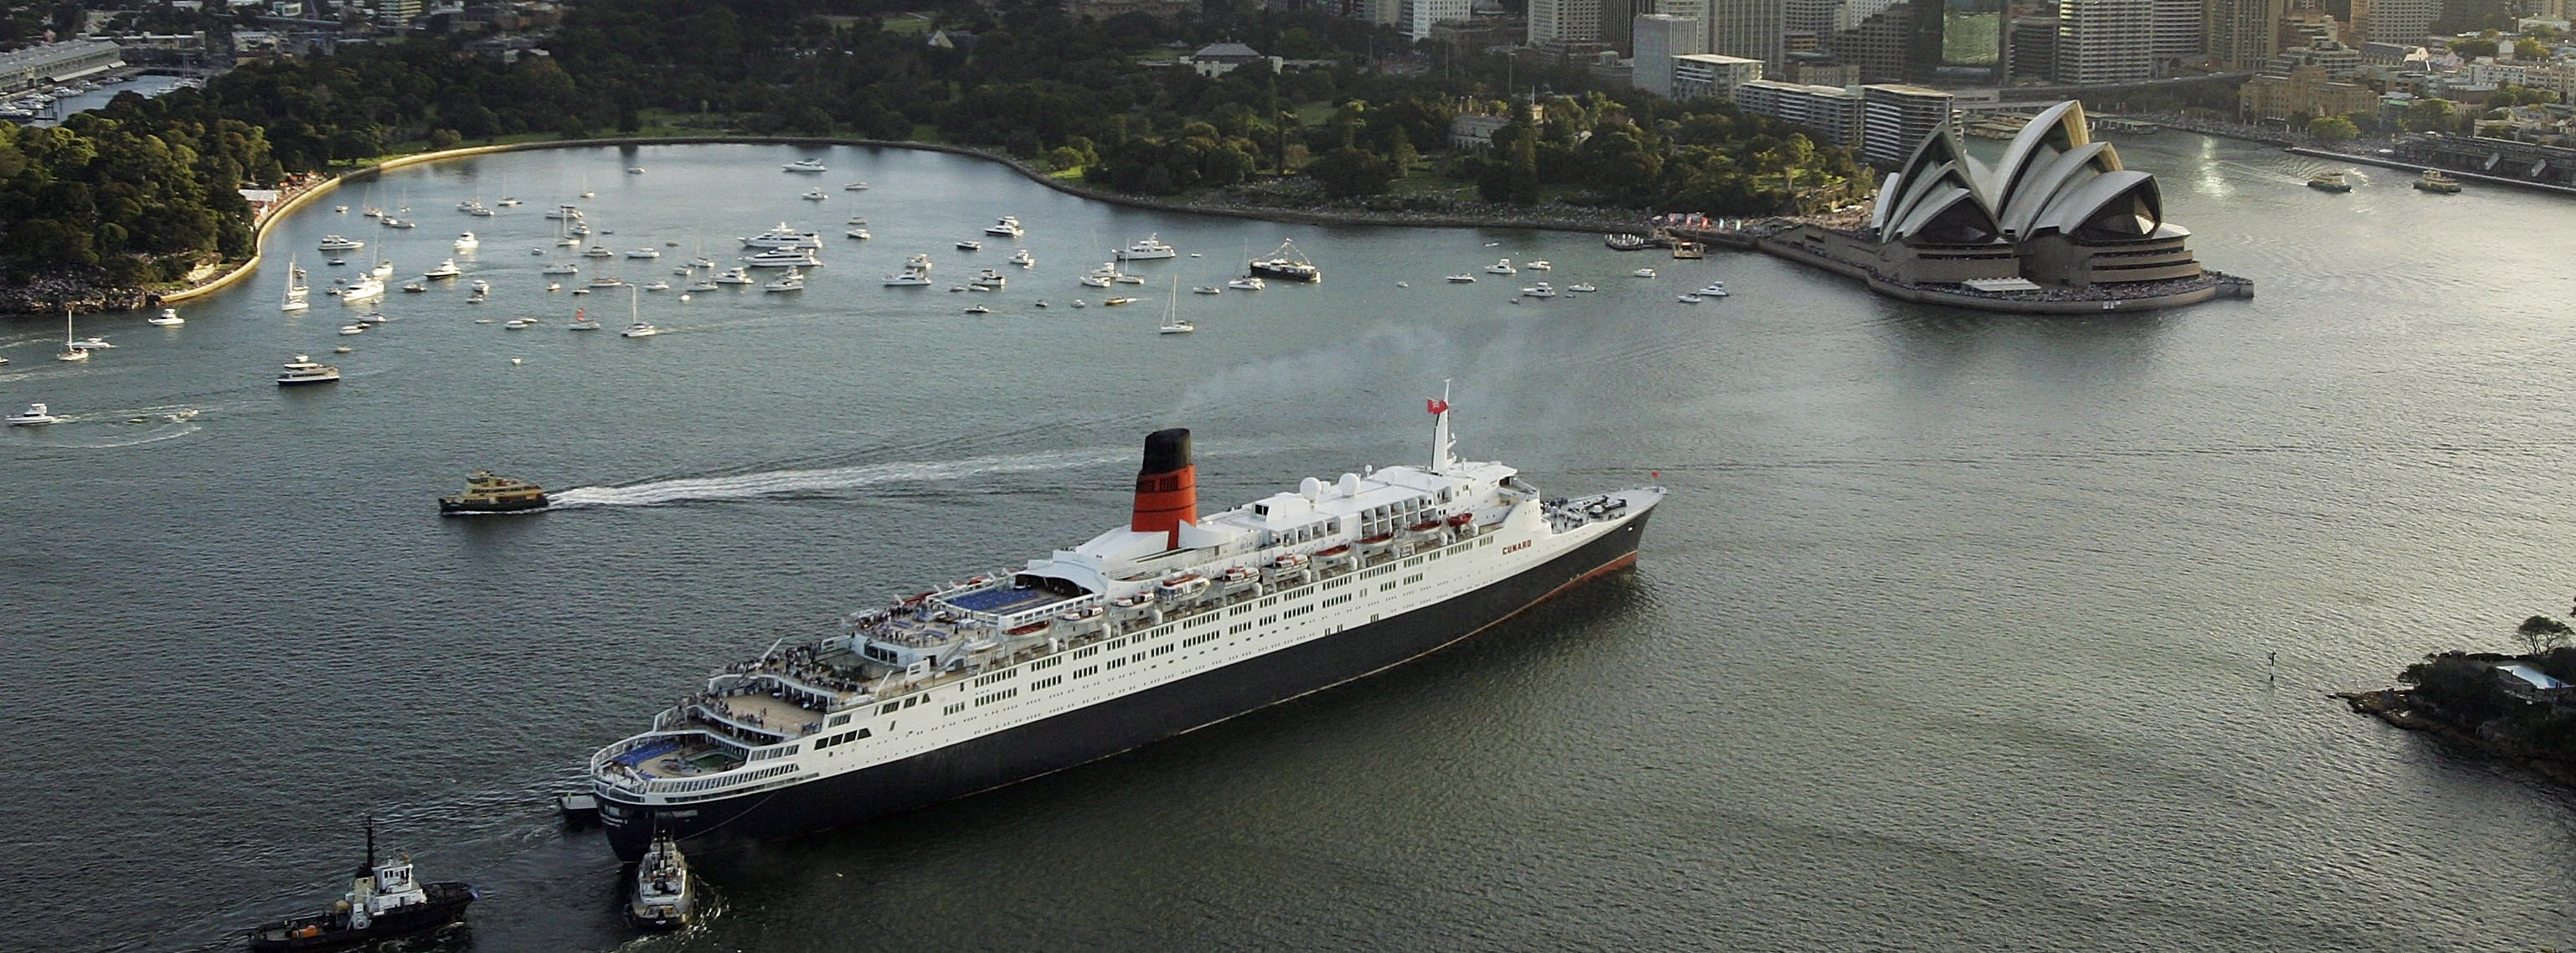 Unreasonable at Sea to set sail on 100-day accelerator cruise with 11 startups and Desmond Tutu